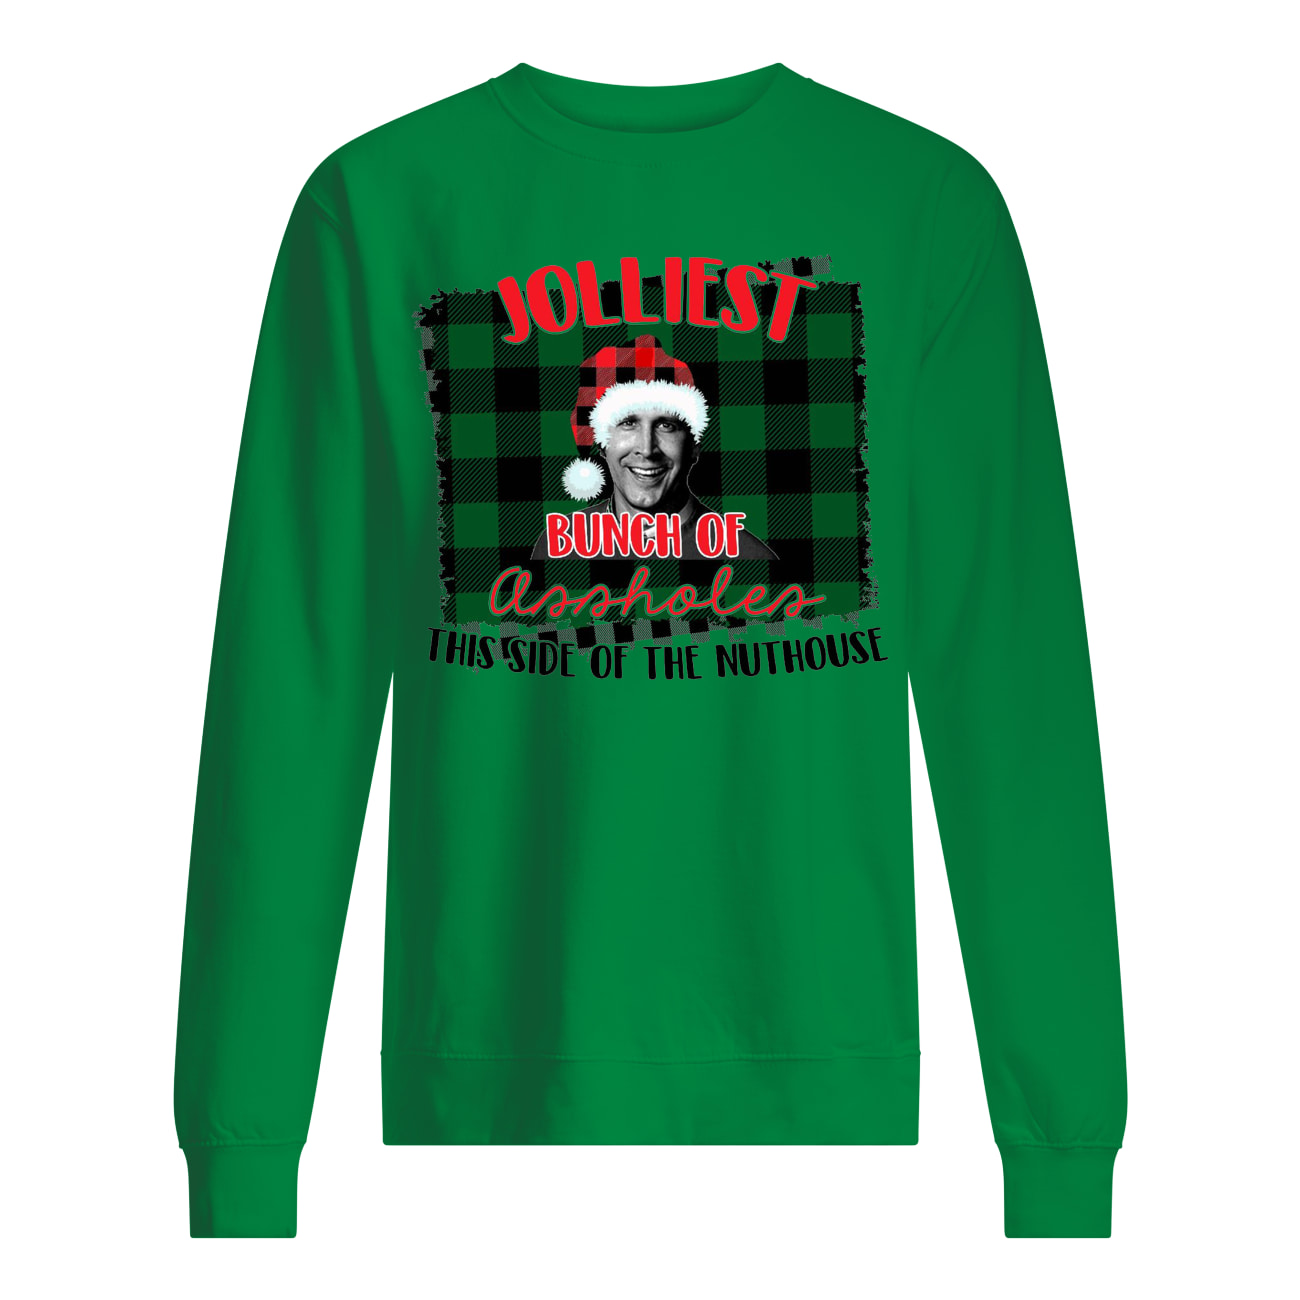 Jolliest bunch of assholes this side of the nuthouse national lampoon's christmas vacation sweatshirt